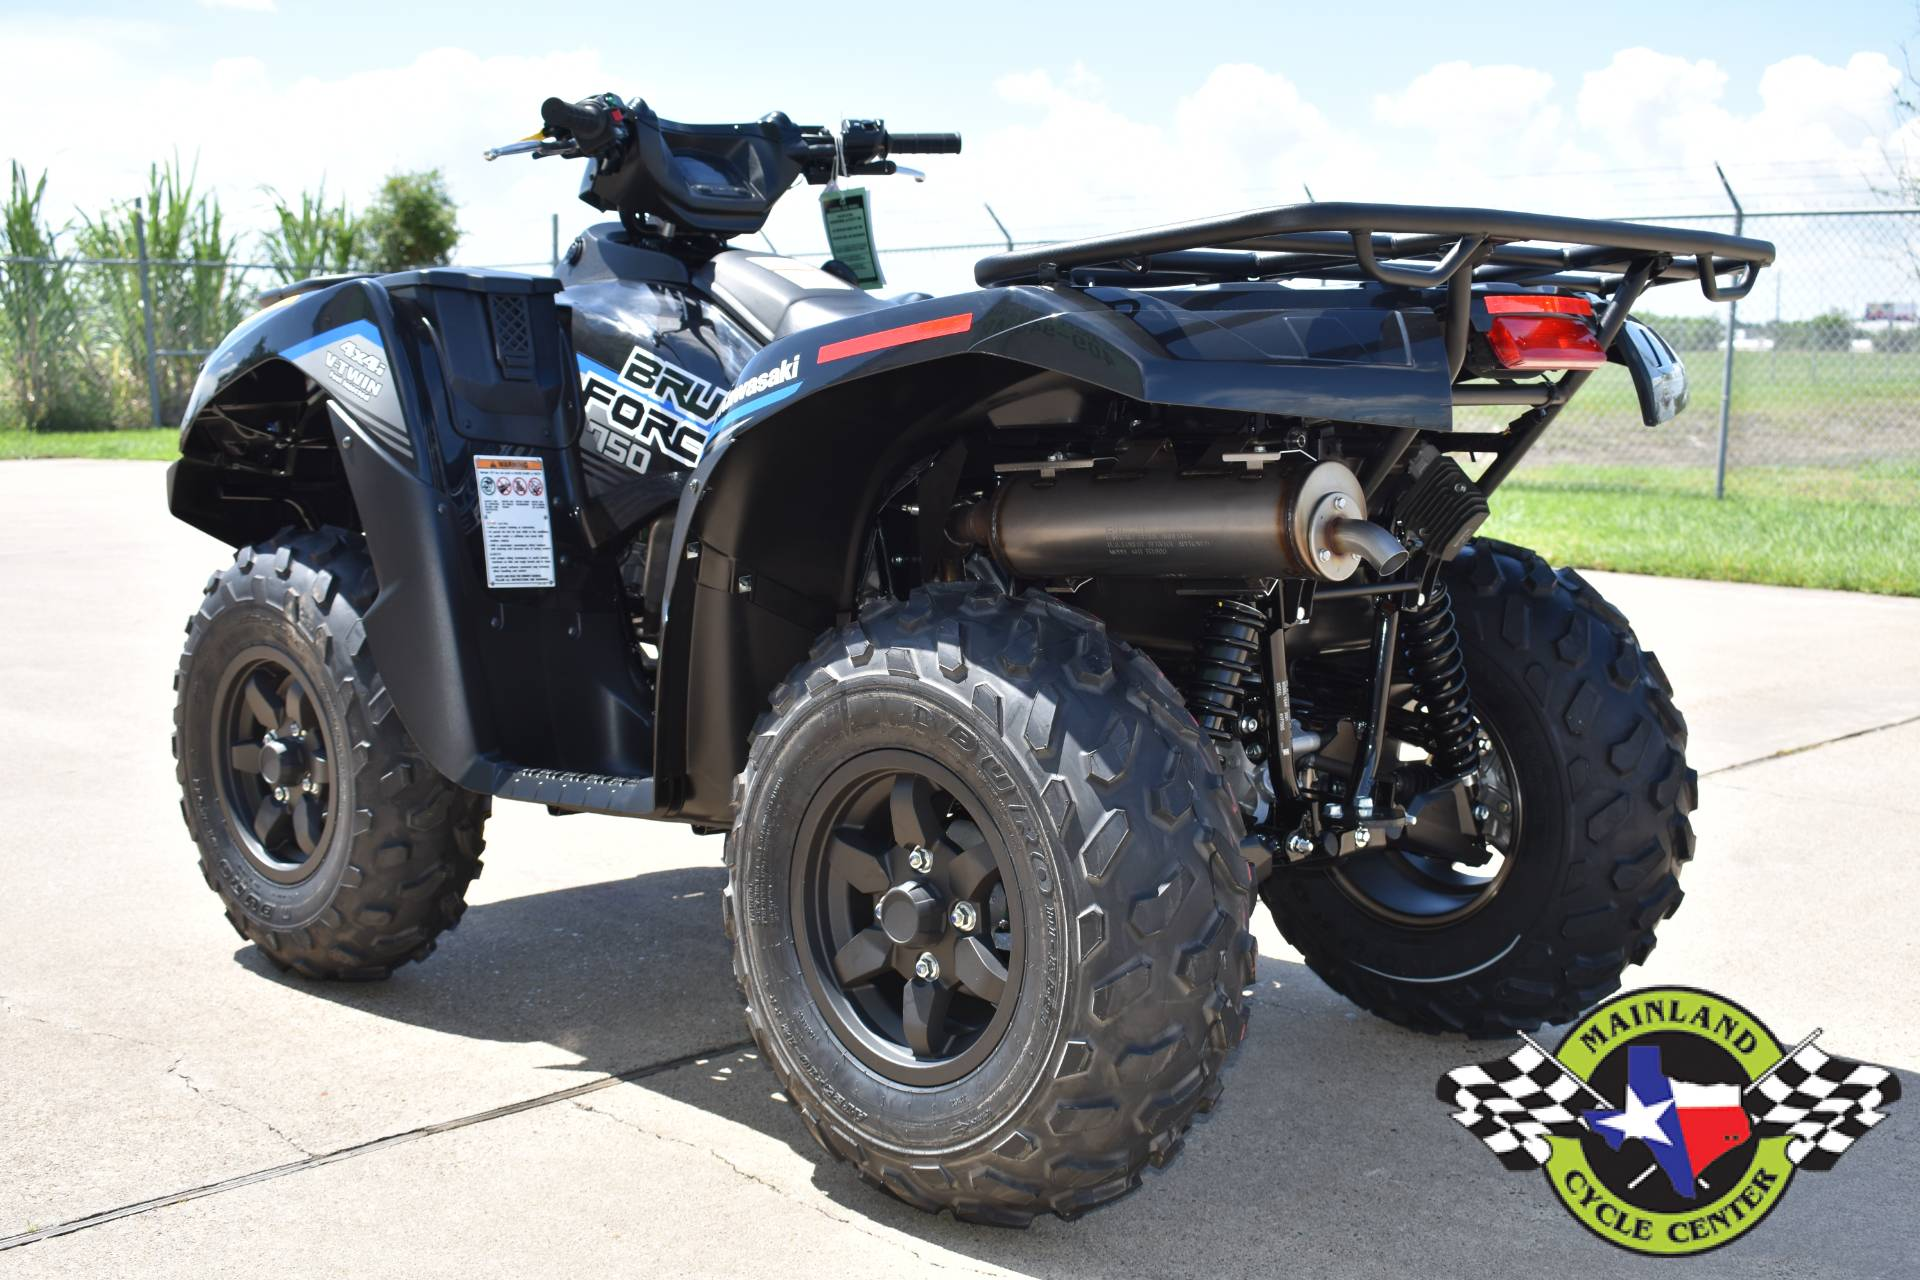 2021 Kawasaki Brute Force 750 4x4i EPS in La Marque, Texas - Photo 6